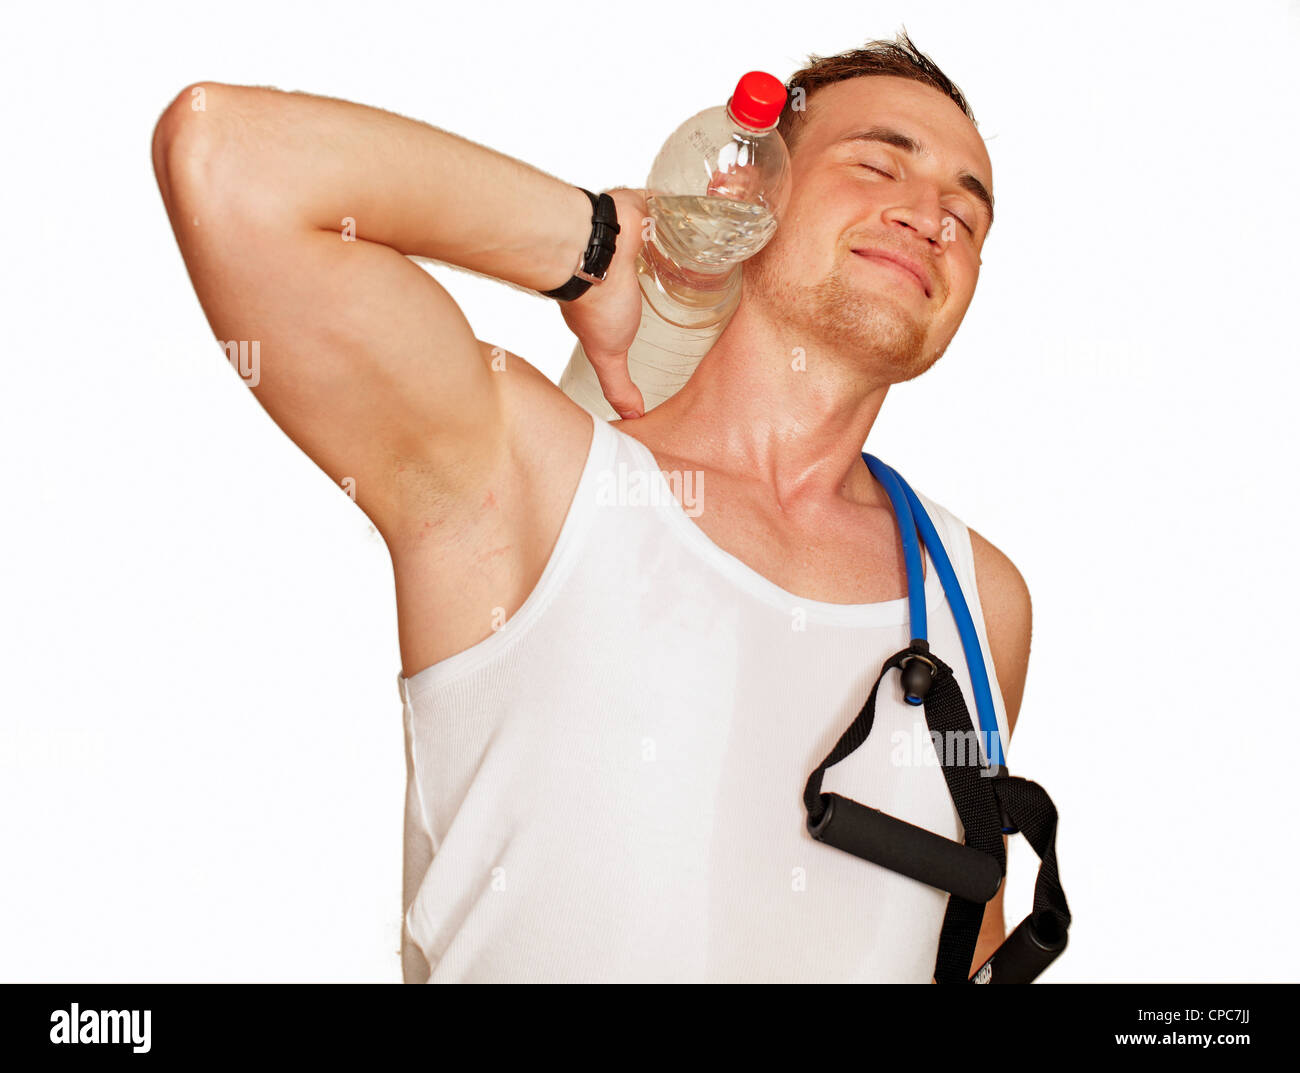 sport men - Stock Image